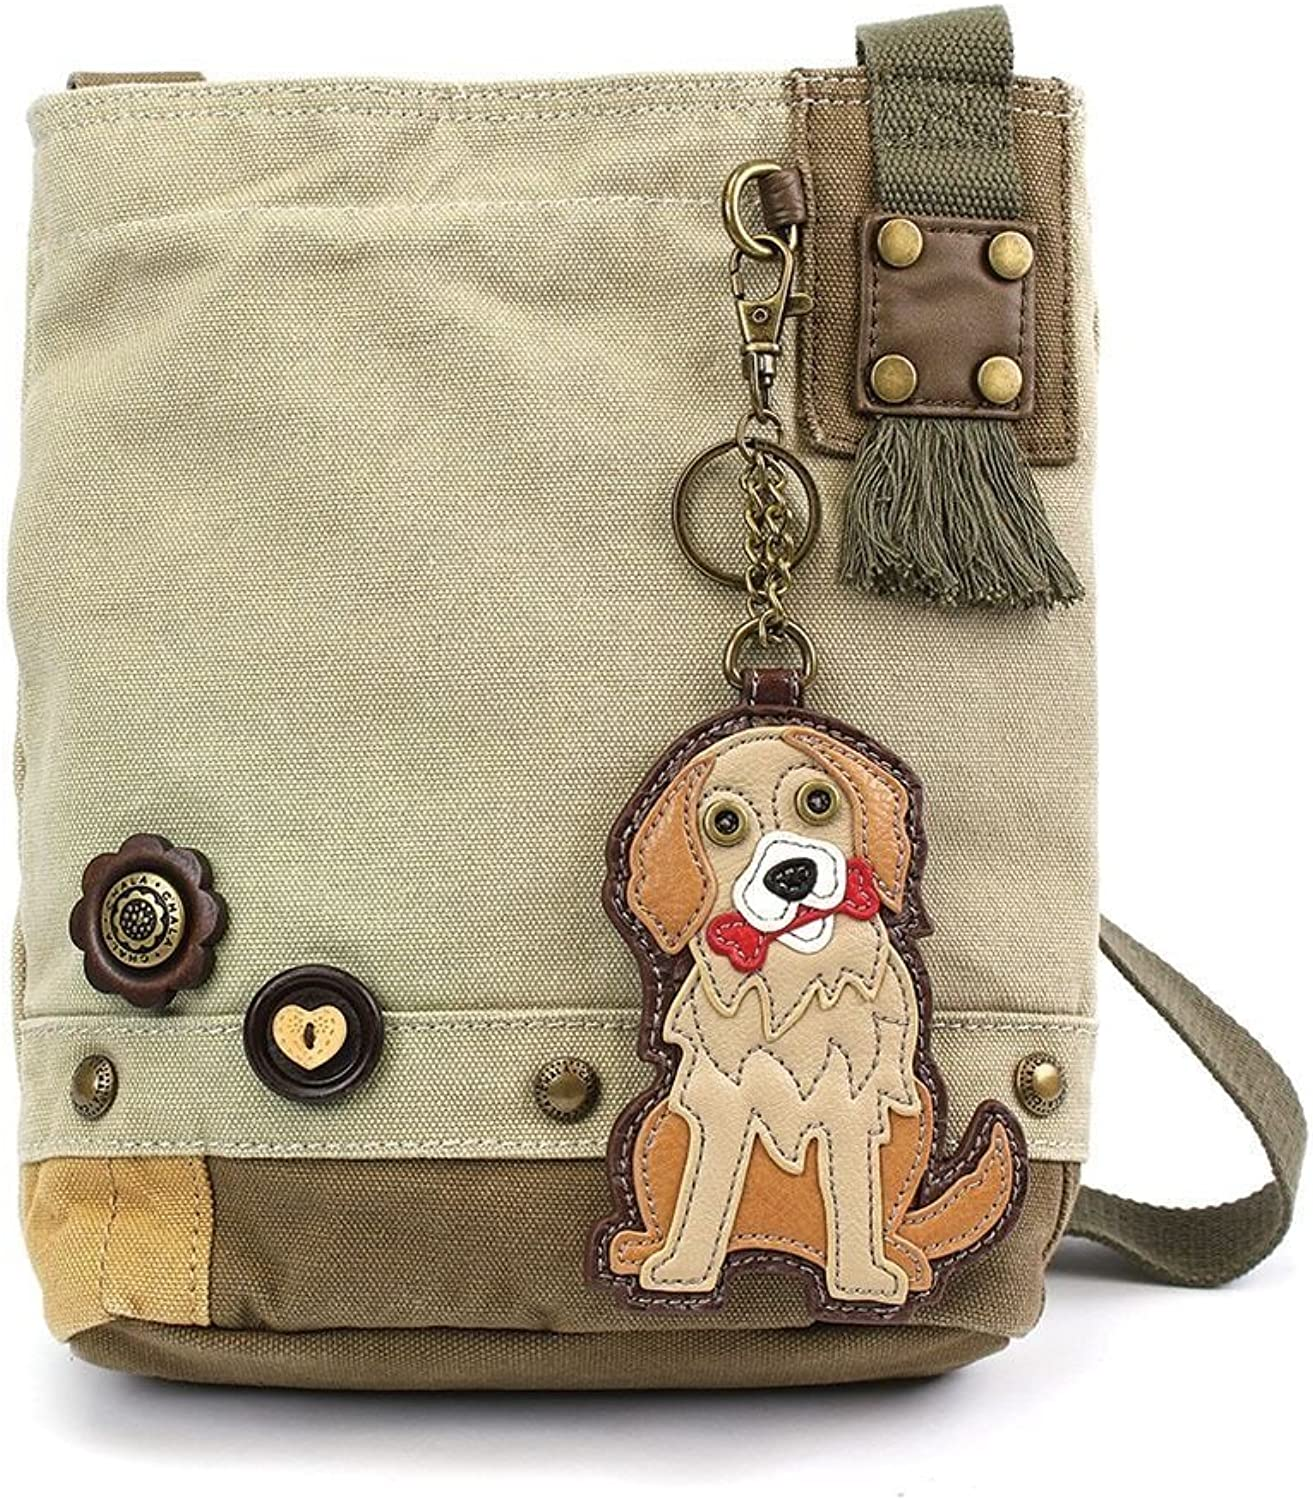 Chala Purse Handbag Sand Canvas Crossbody with Key Chain Tote Bag golden Retriever